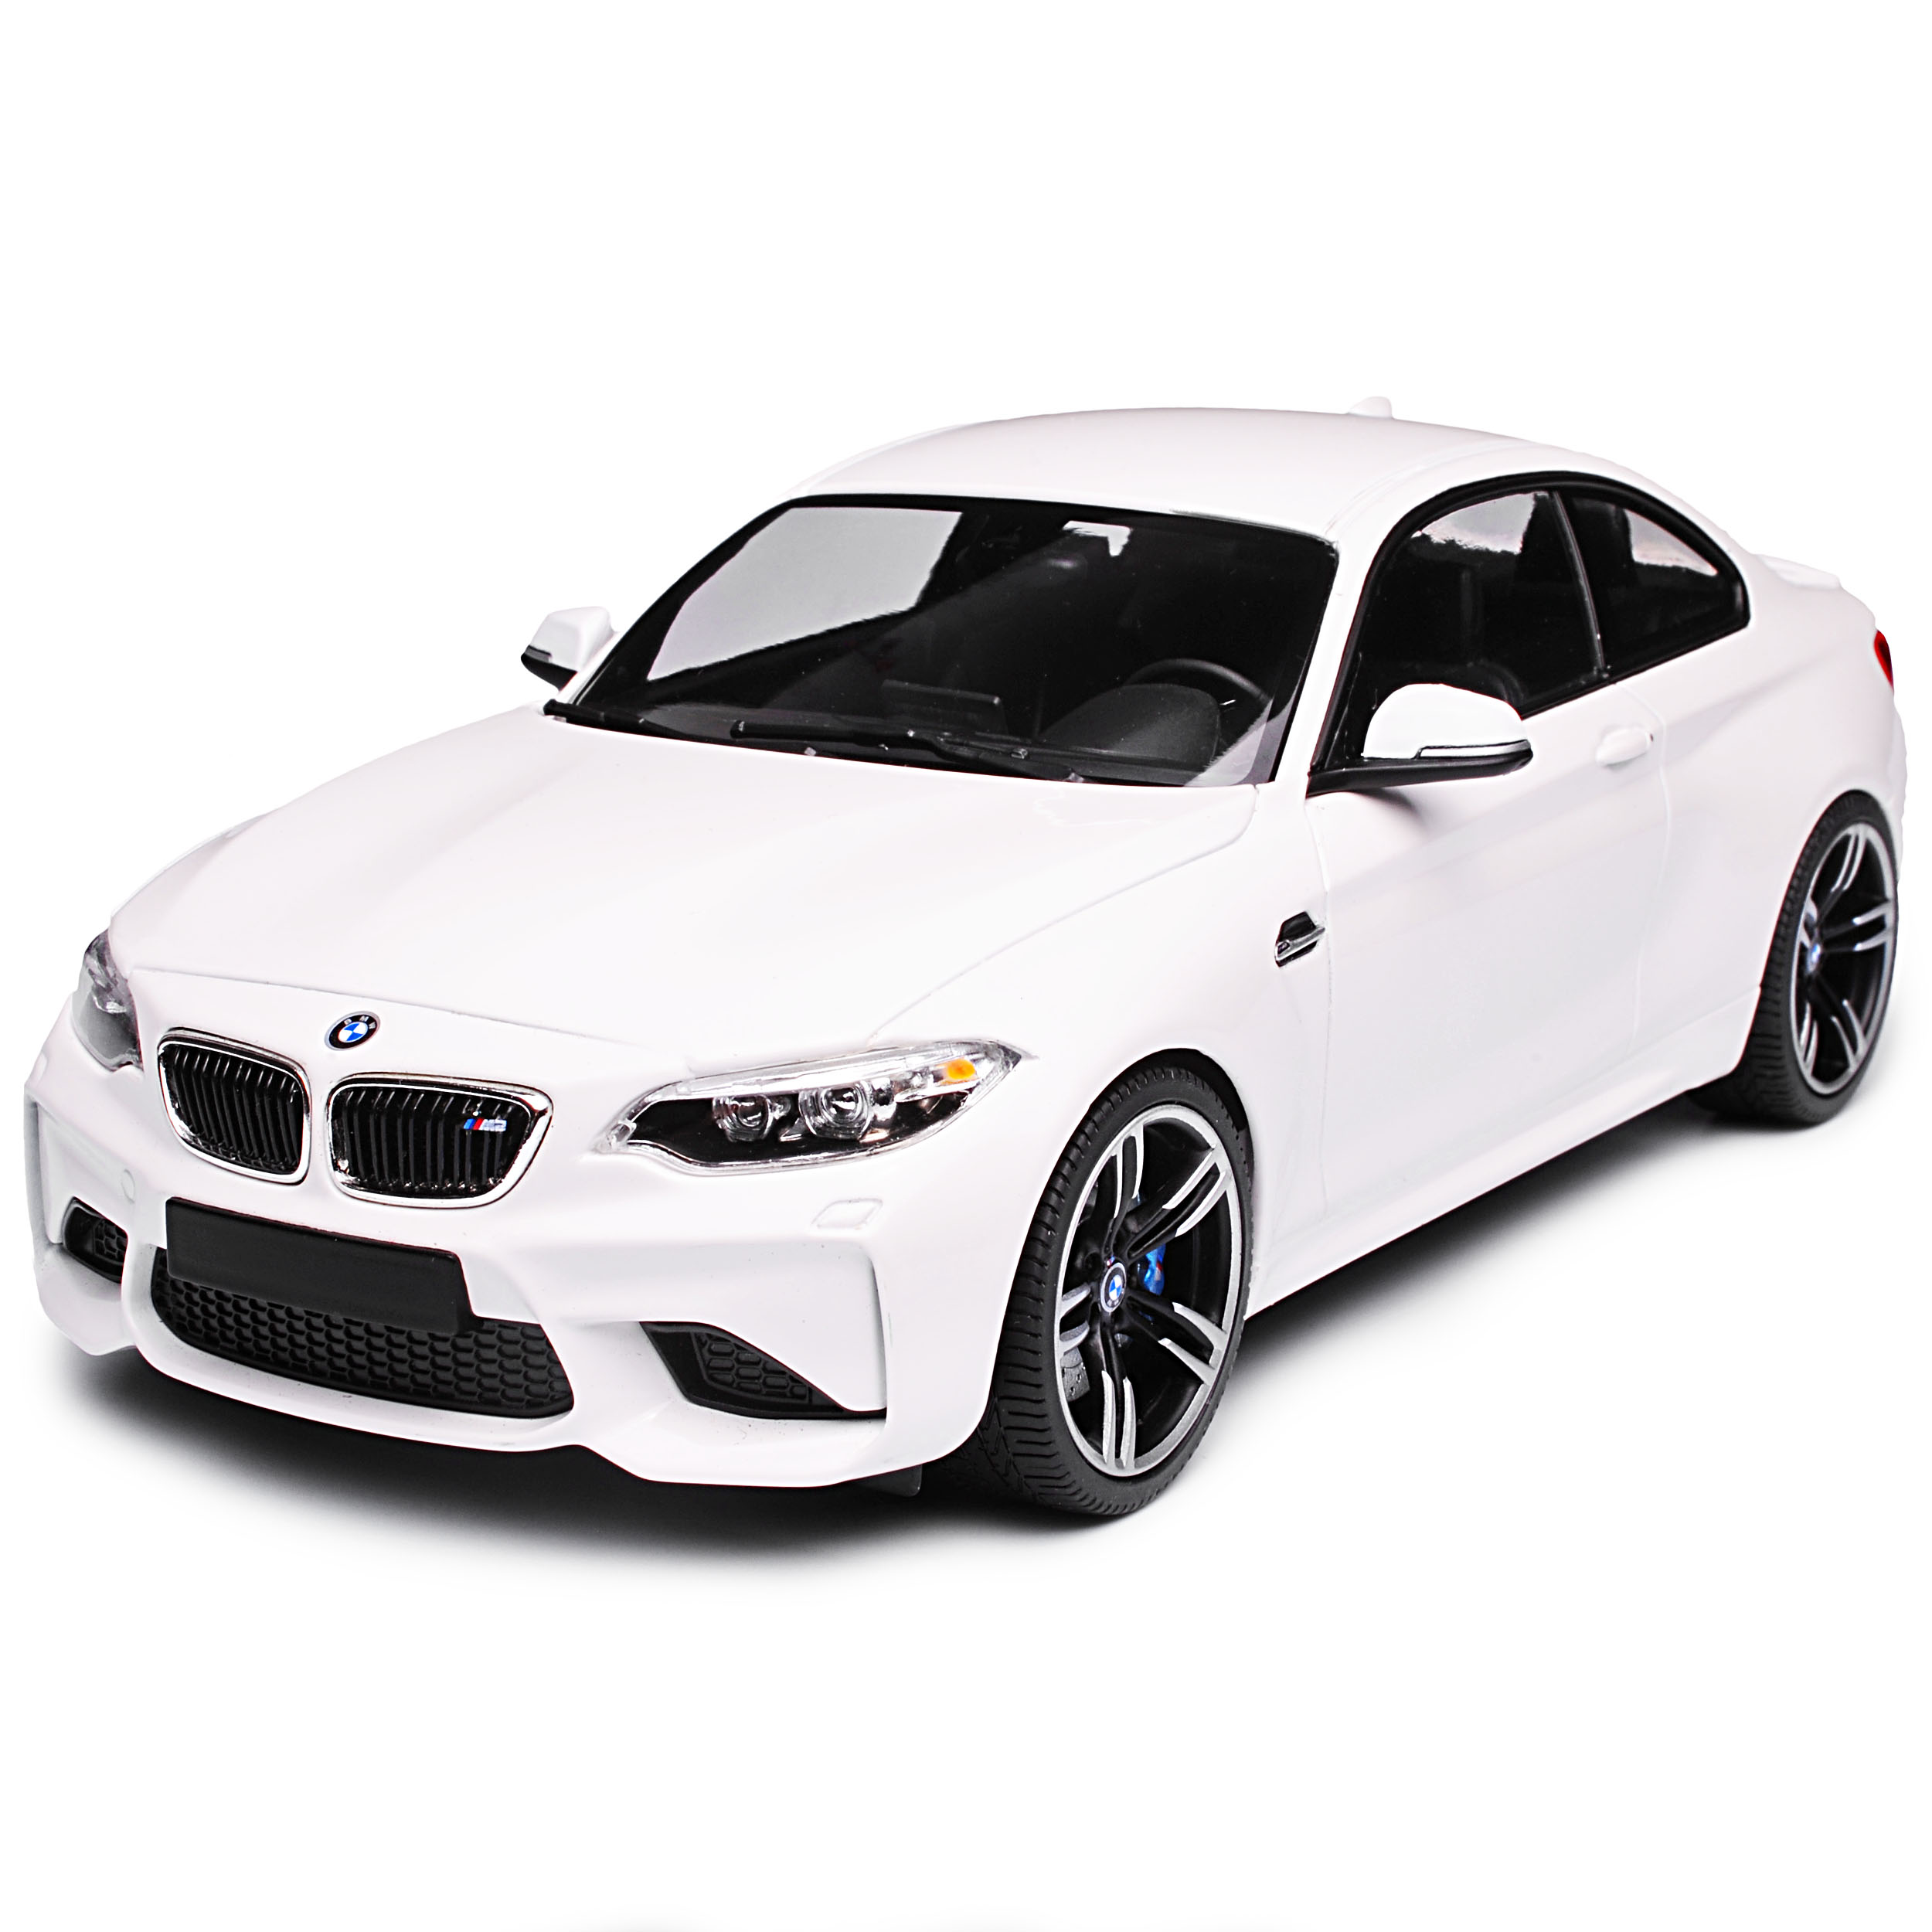 bmw 2er f22 m2 coupe weiss ab 2013 1 18 minichamps modell. Black Bedroom Furniture Sets. Home Design Ideas